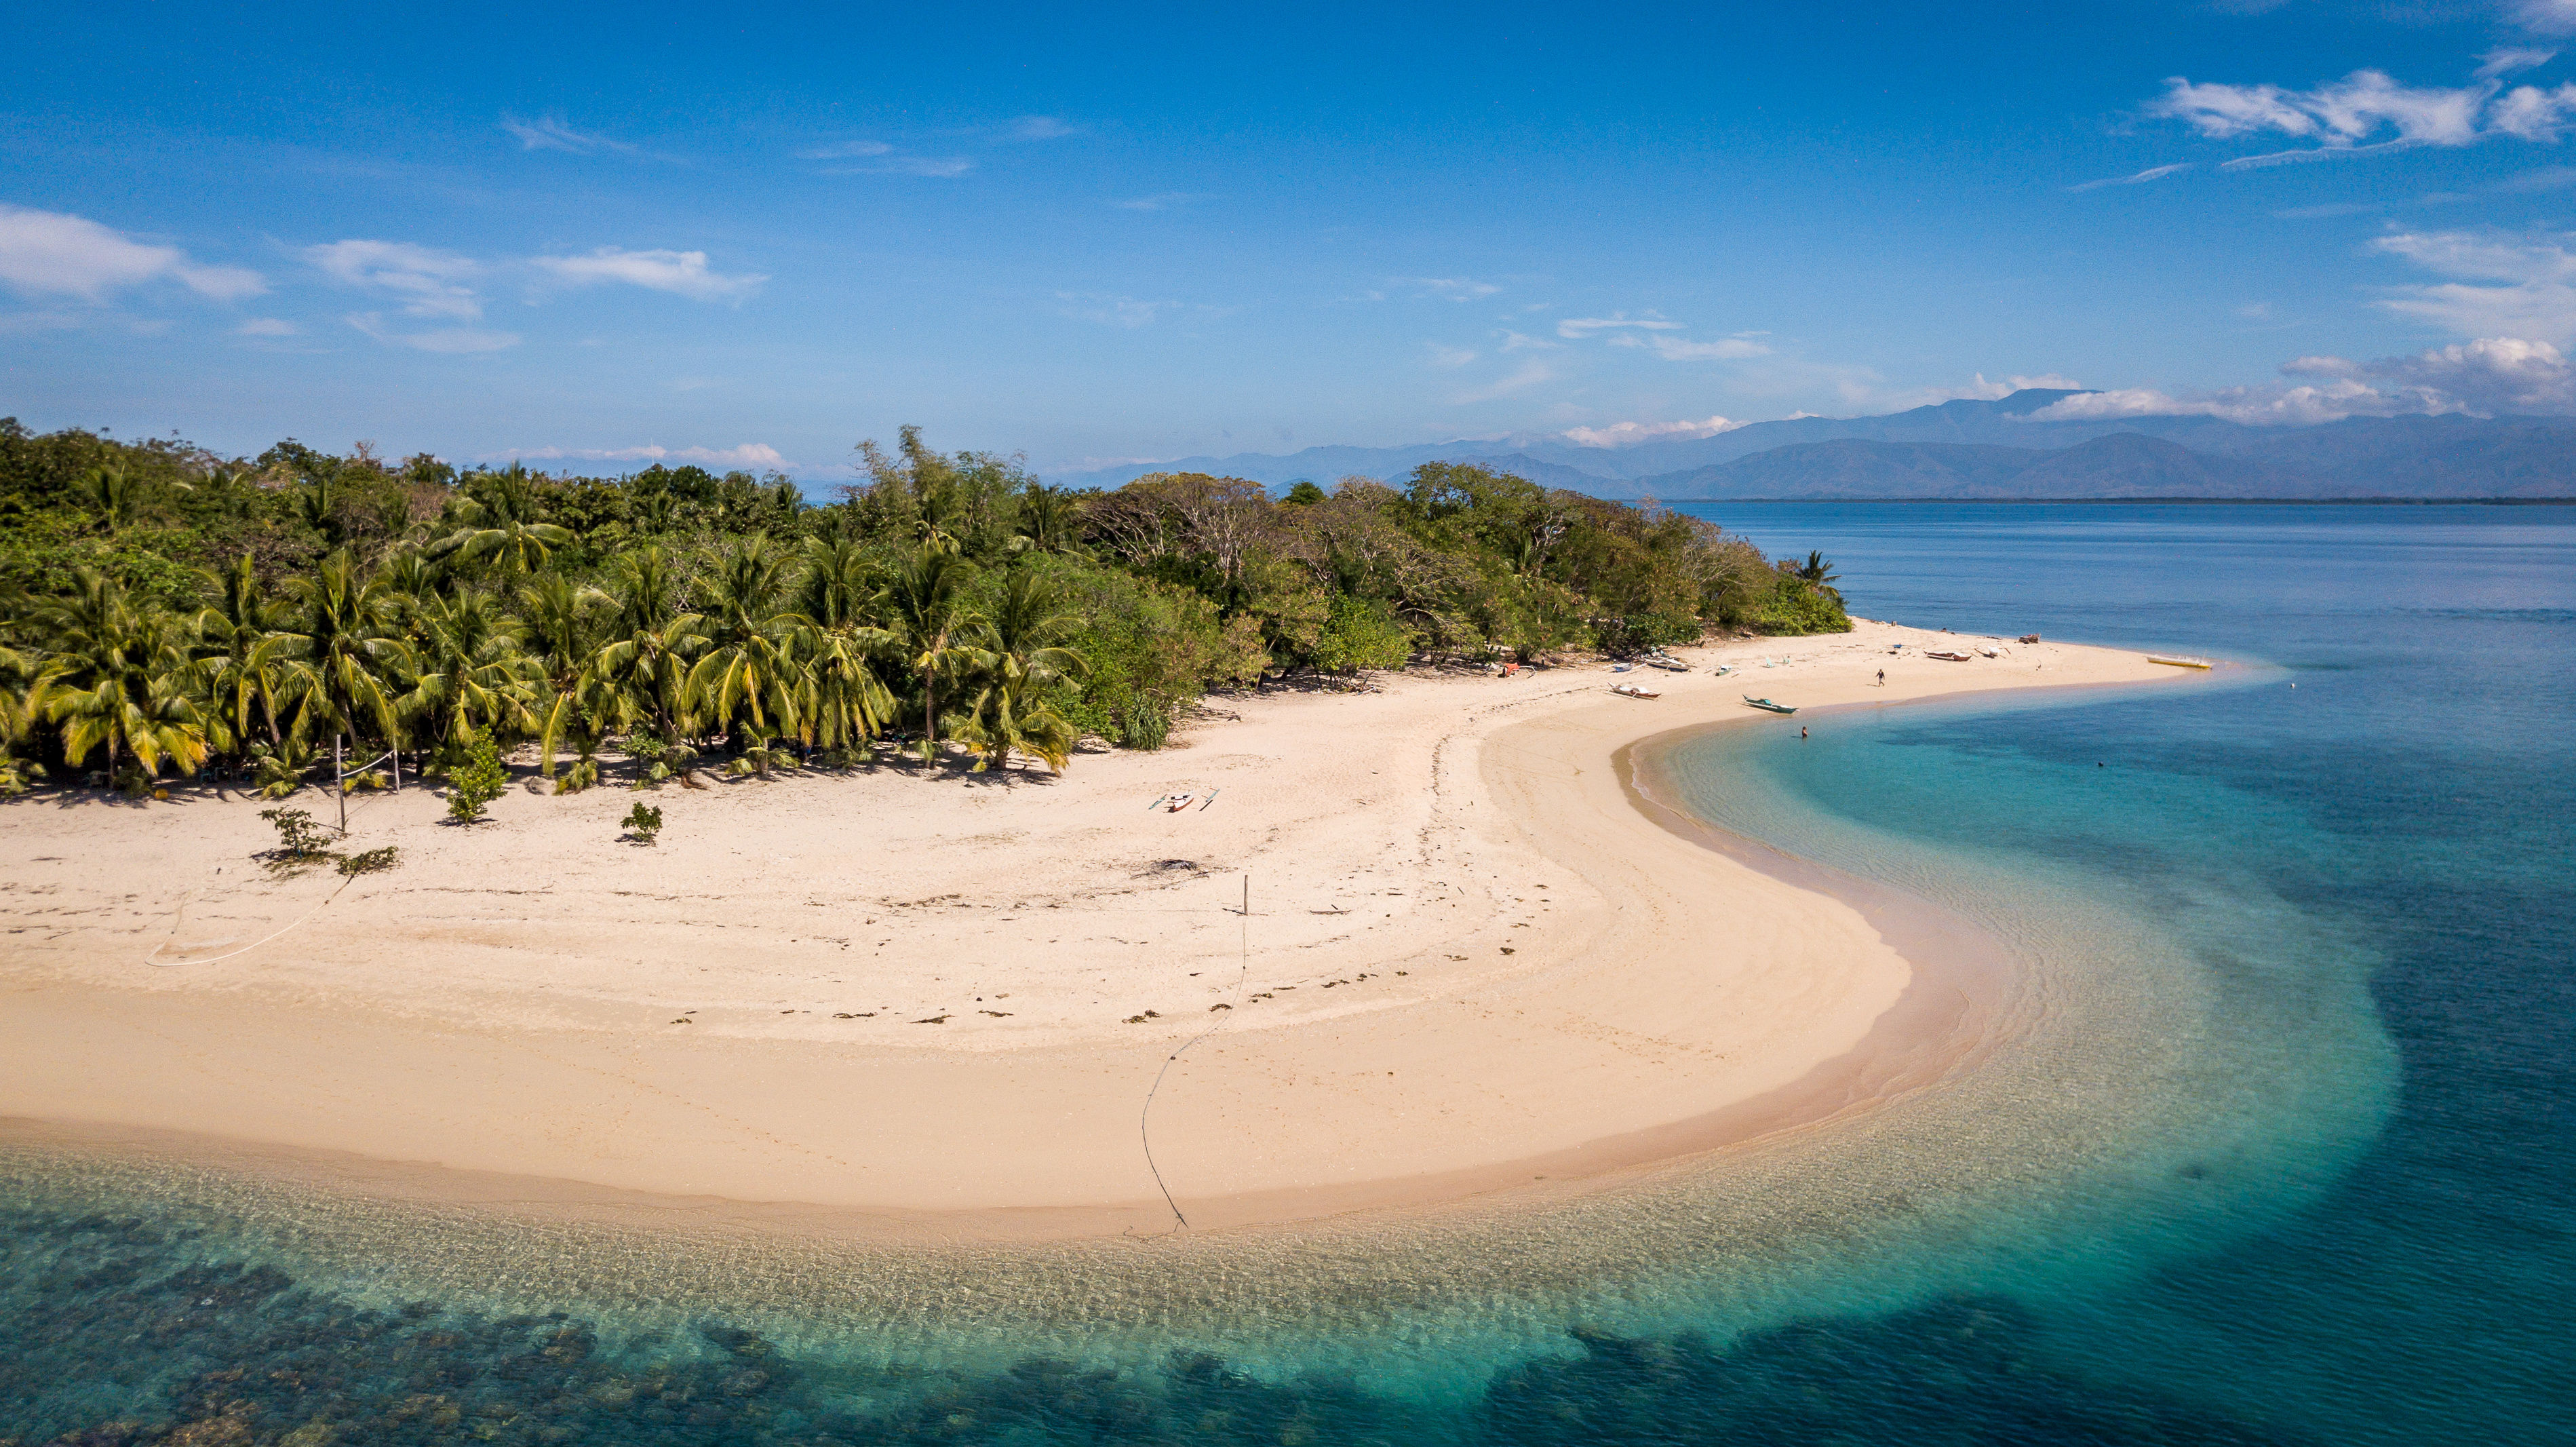 Aerial view of white sand tropical island of Mindoro with green palm trees and surrounded by clear turquoise waters, Philippines.